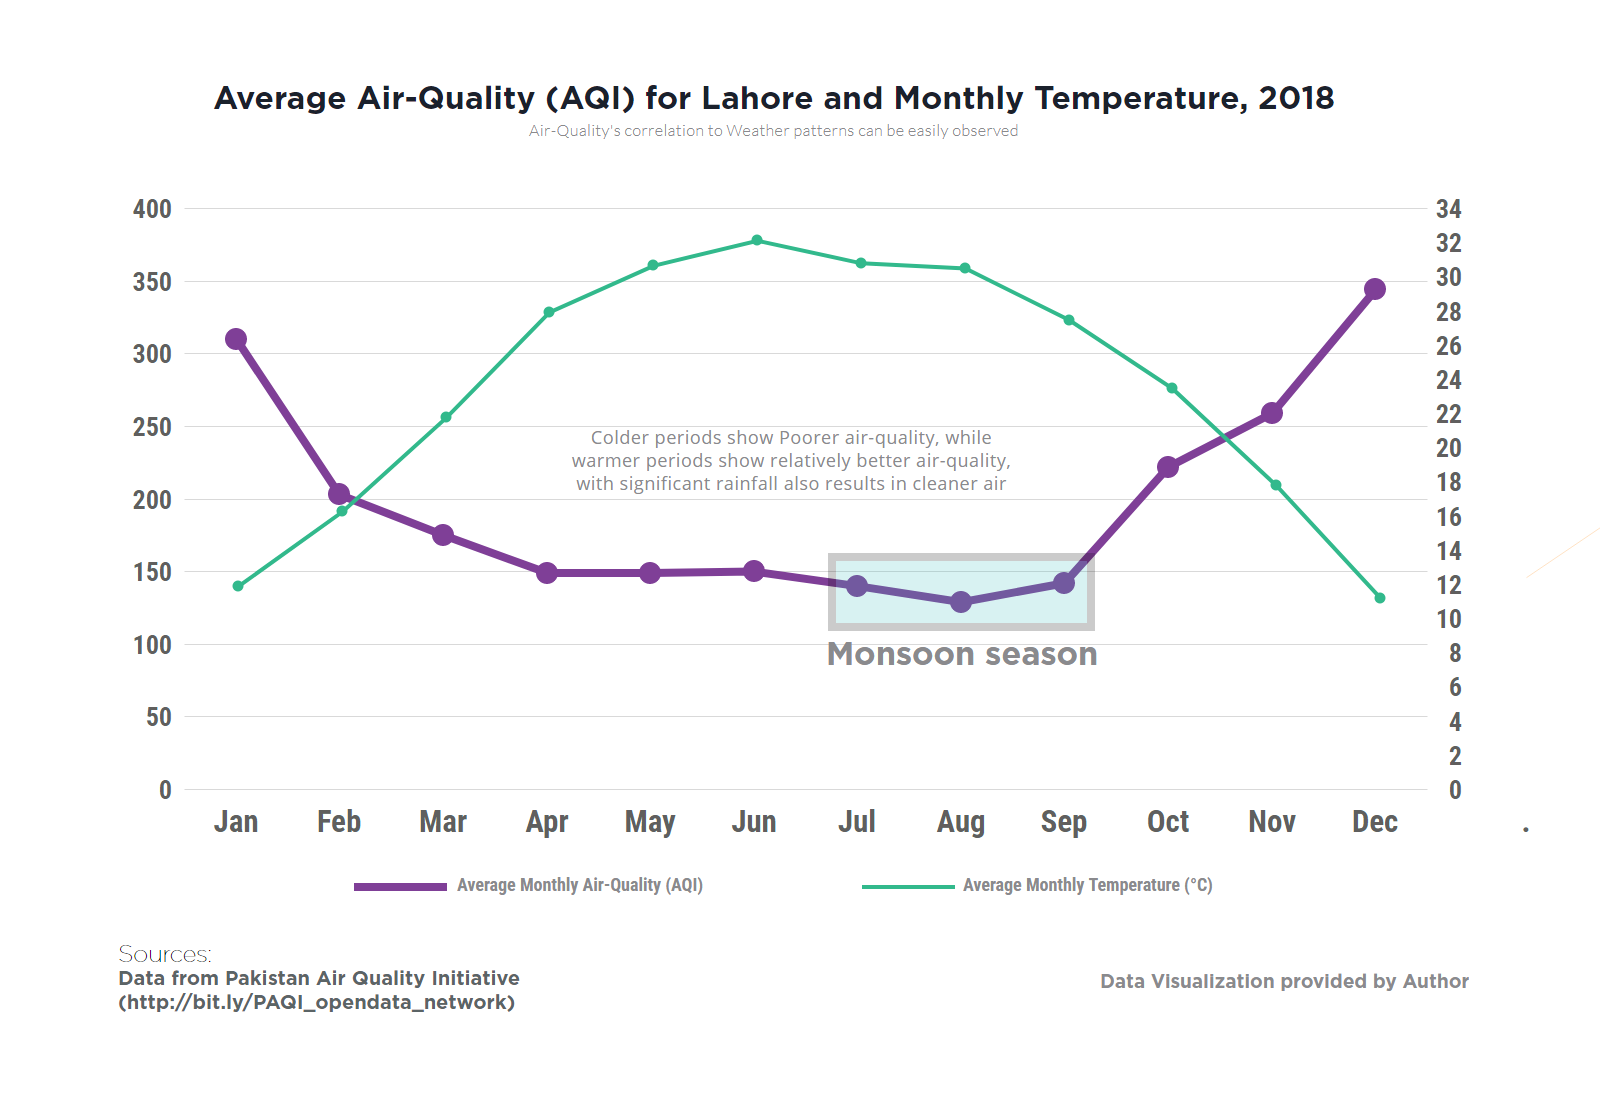 Average air quality index for Lahore and monthly temperature in 2018.